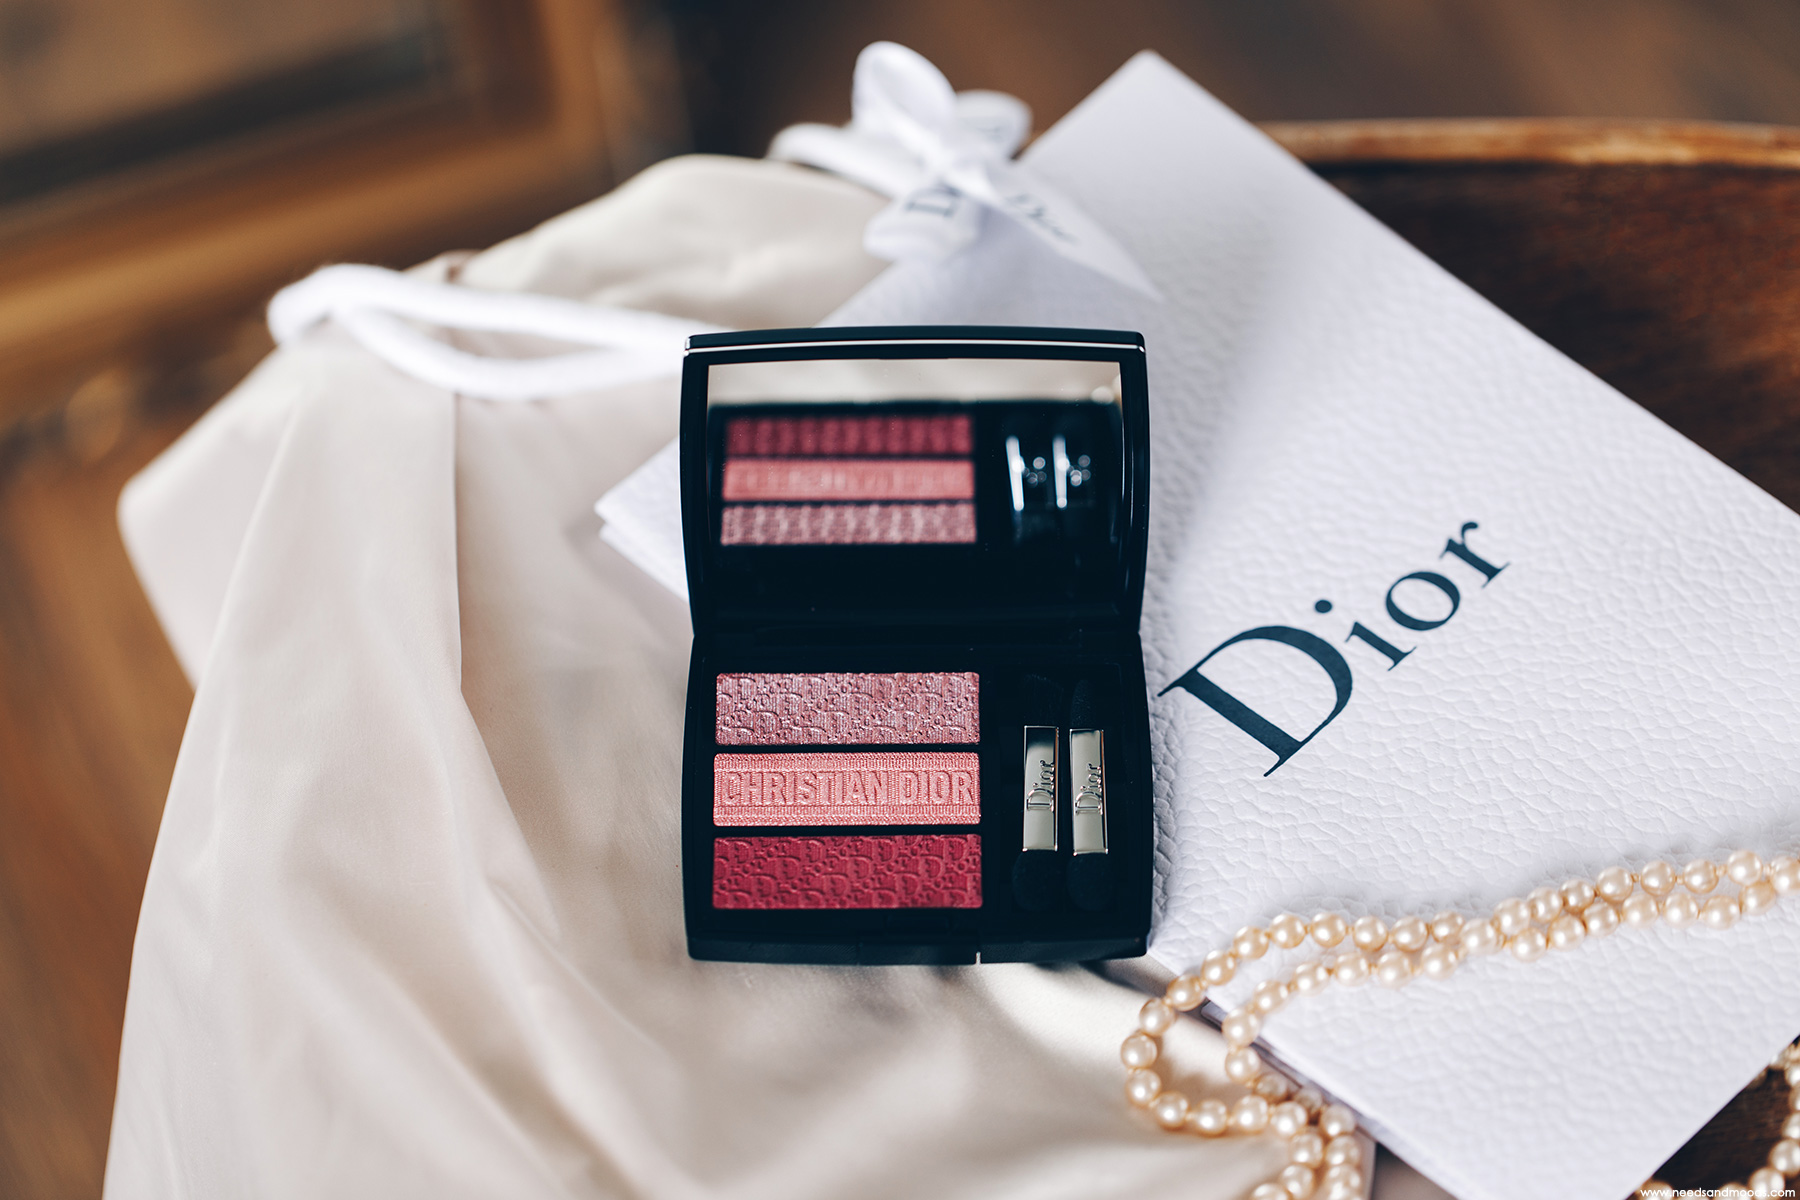 dior 3 couleurs tri o blique palette rosy canvas